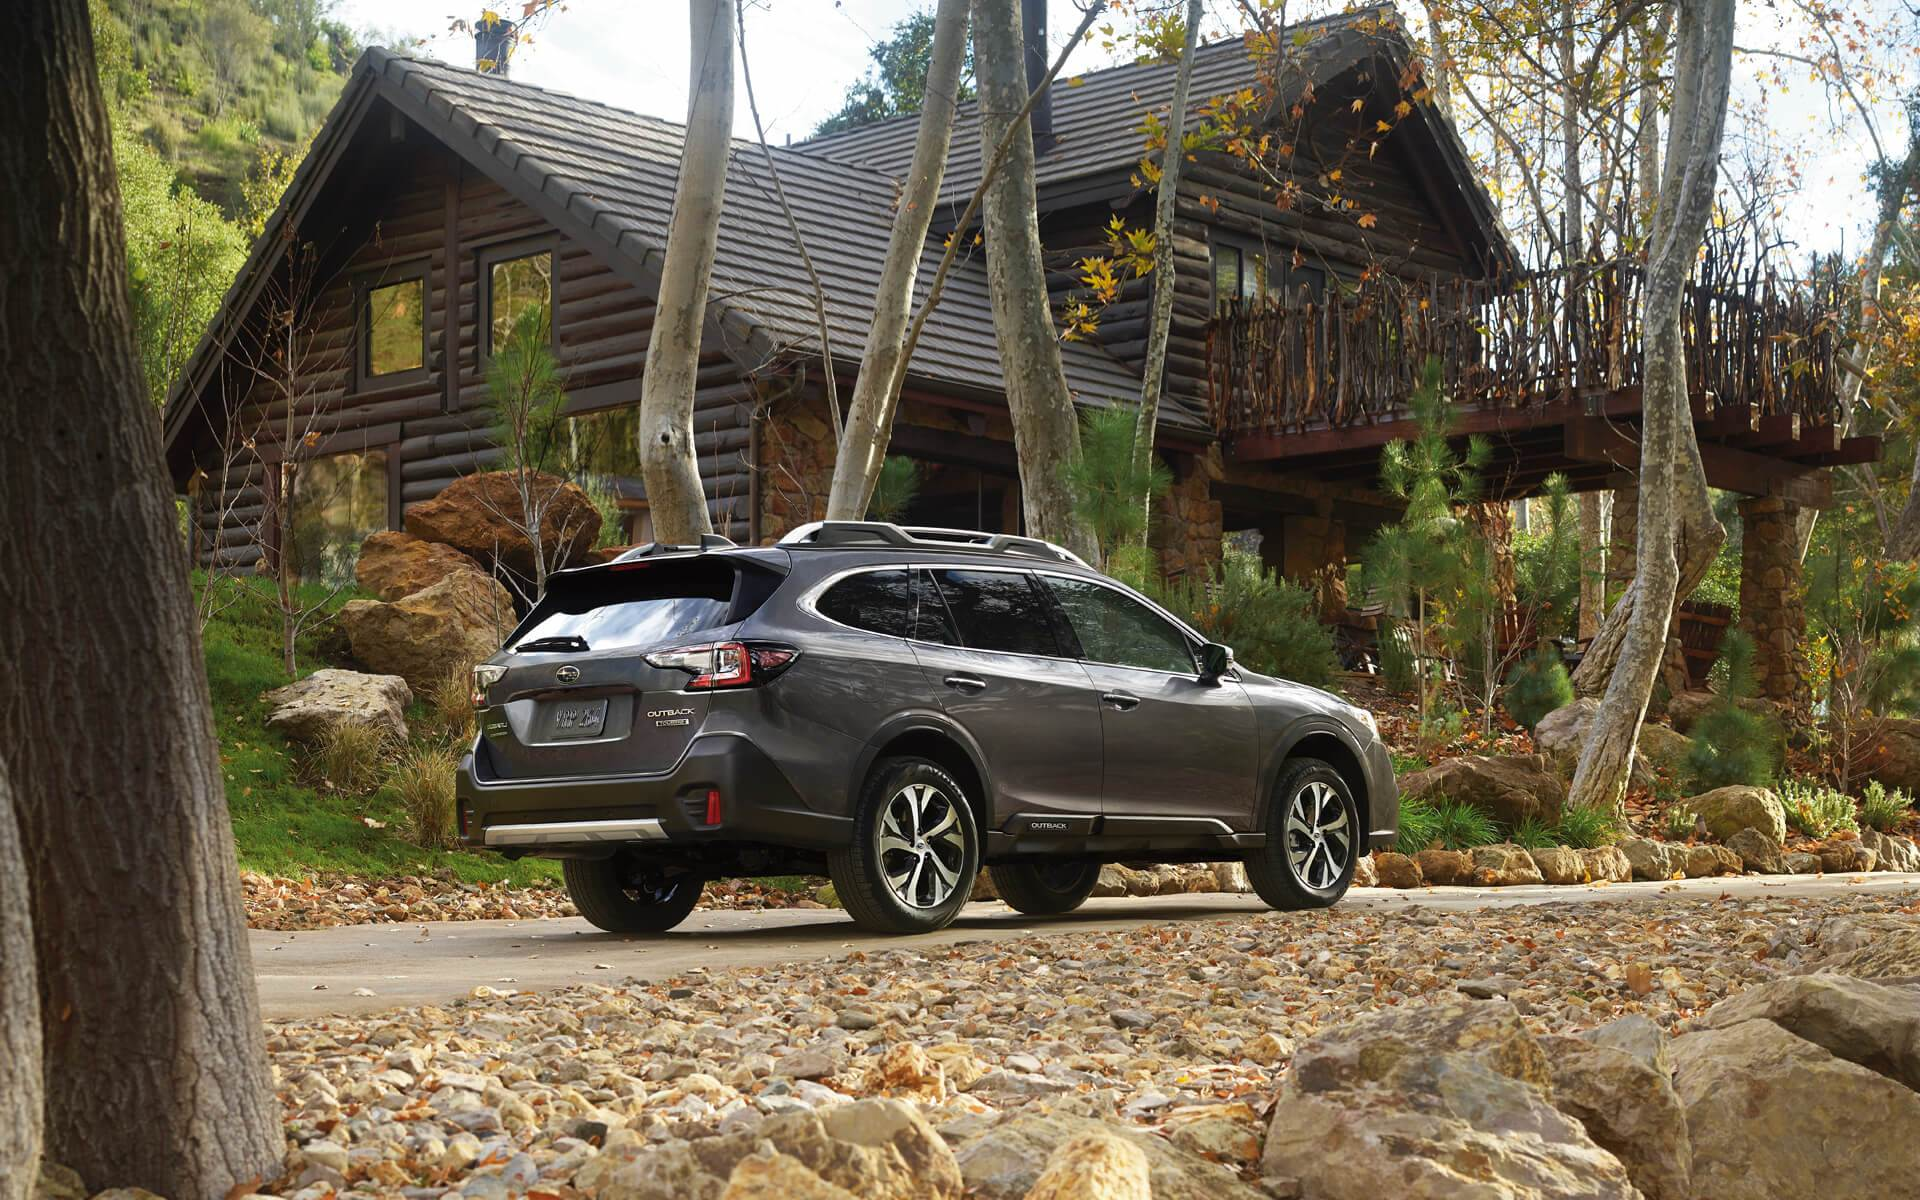 2020 Subaru Outback Rear Gray Exterior Picture